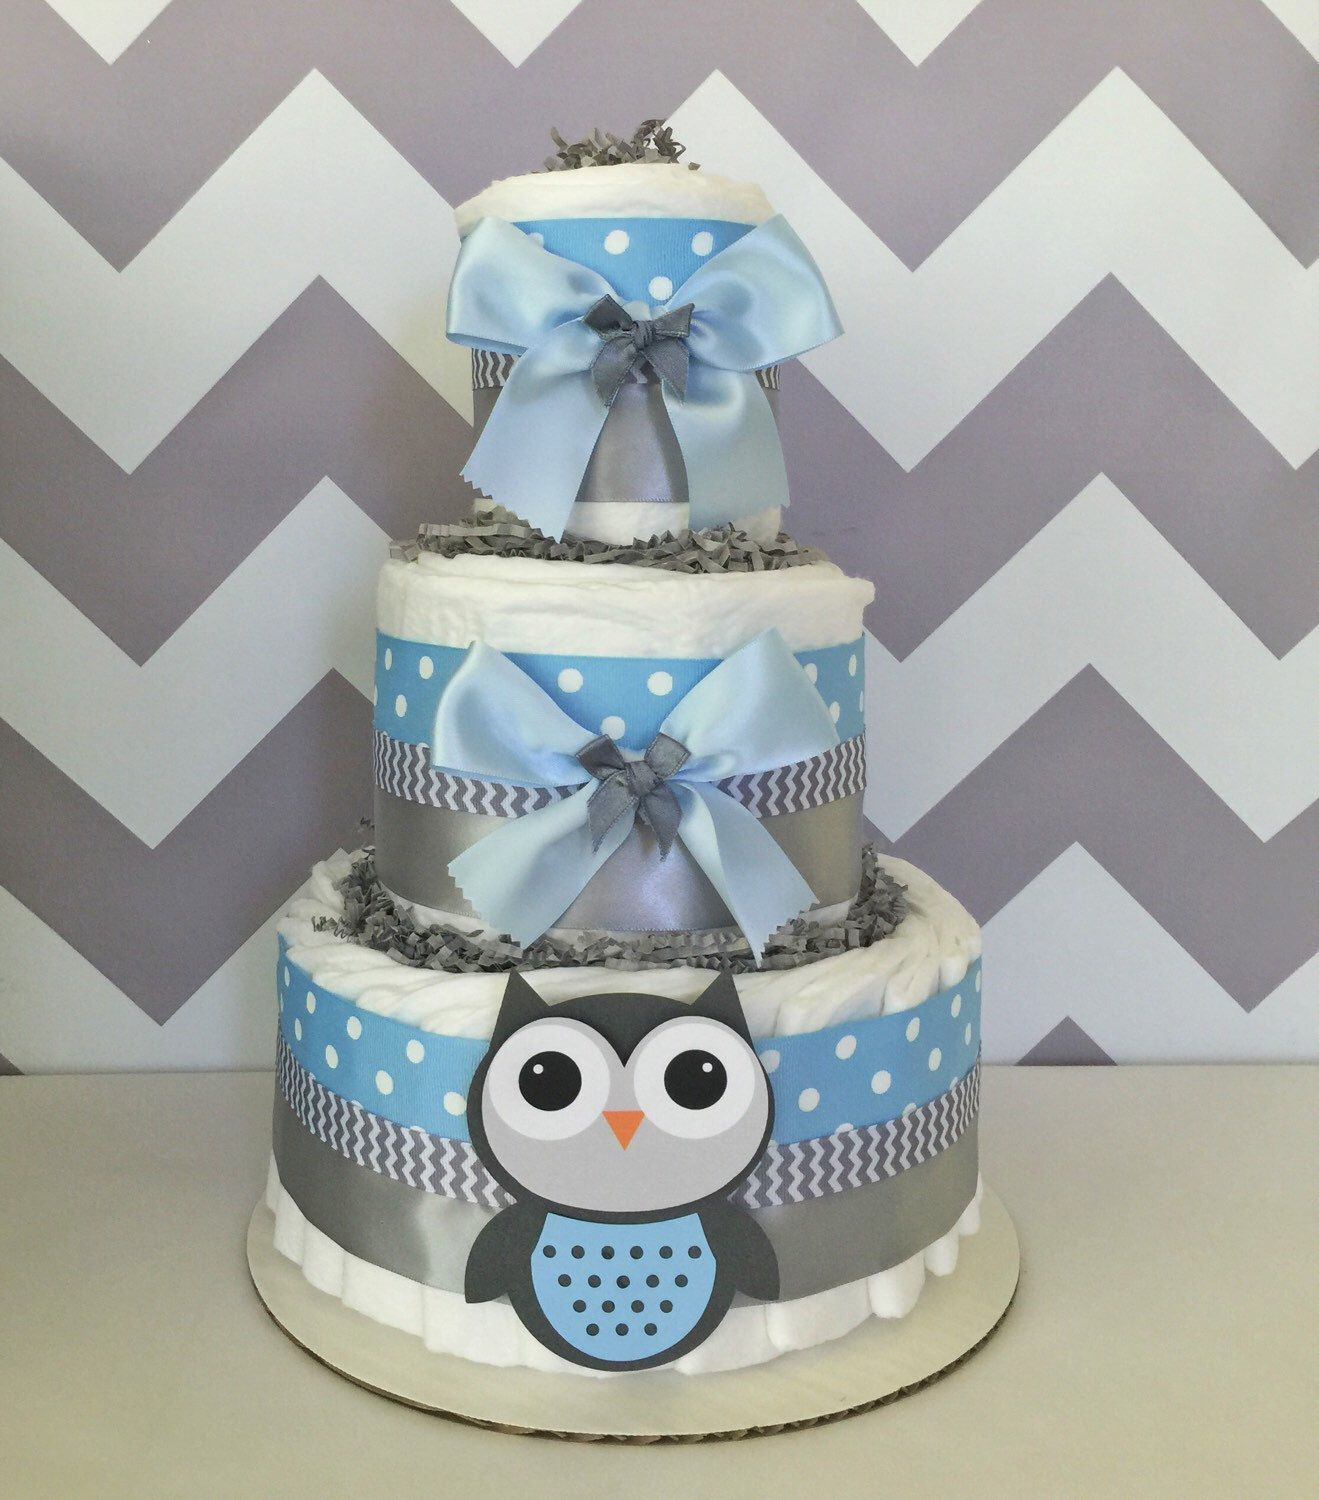 Deluxe Owl Diaper Cake In Blue And Gray, Owl Baby Shower Centerpiece For  Boys, Owl Baby Shower Decoration By AllDiaperCakes